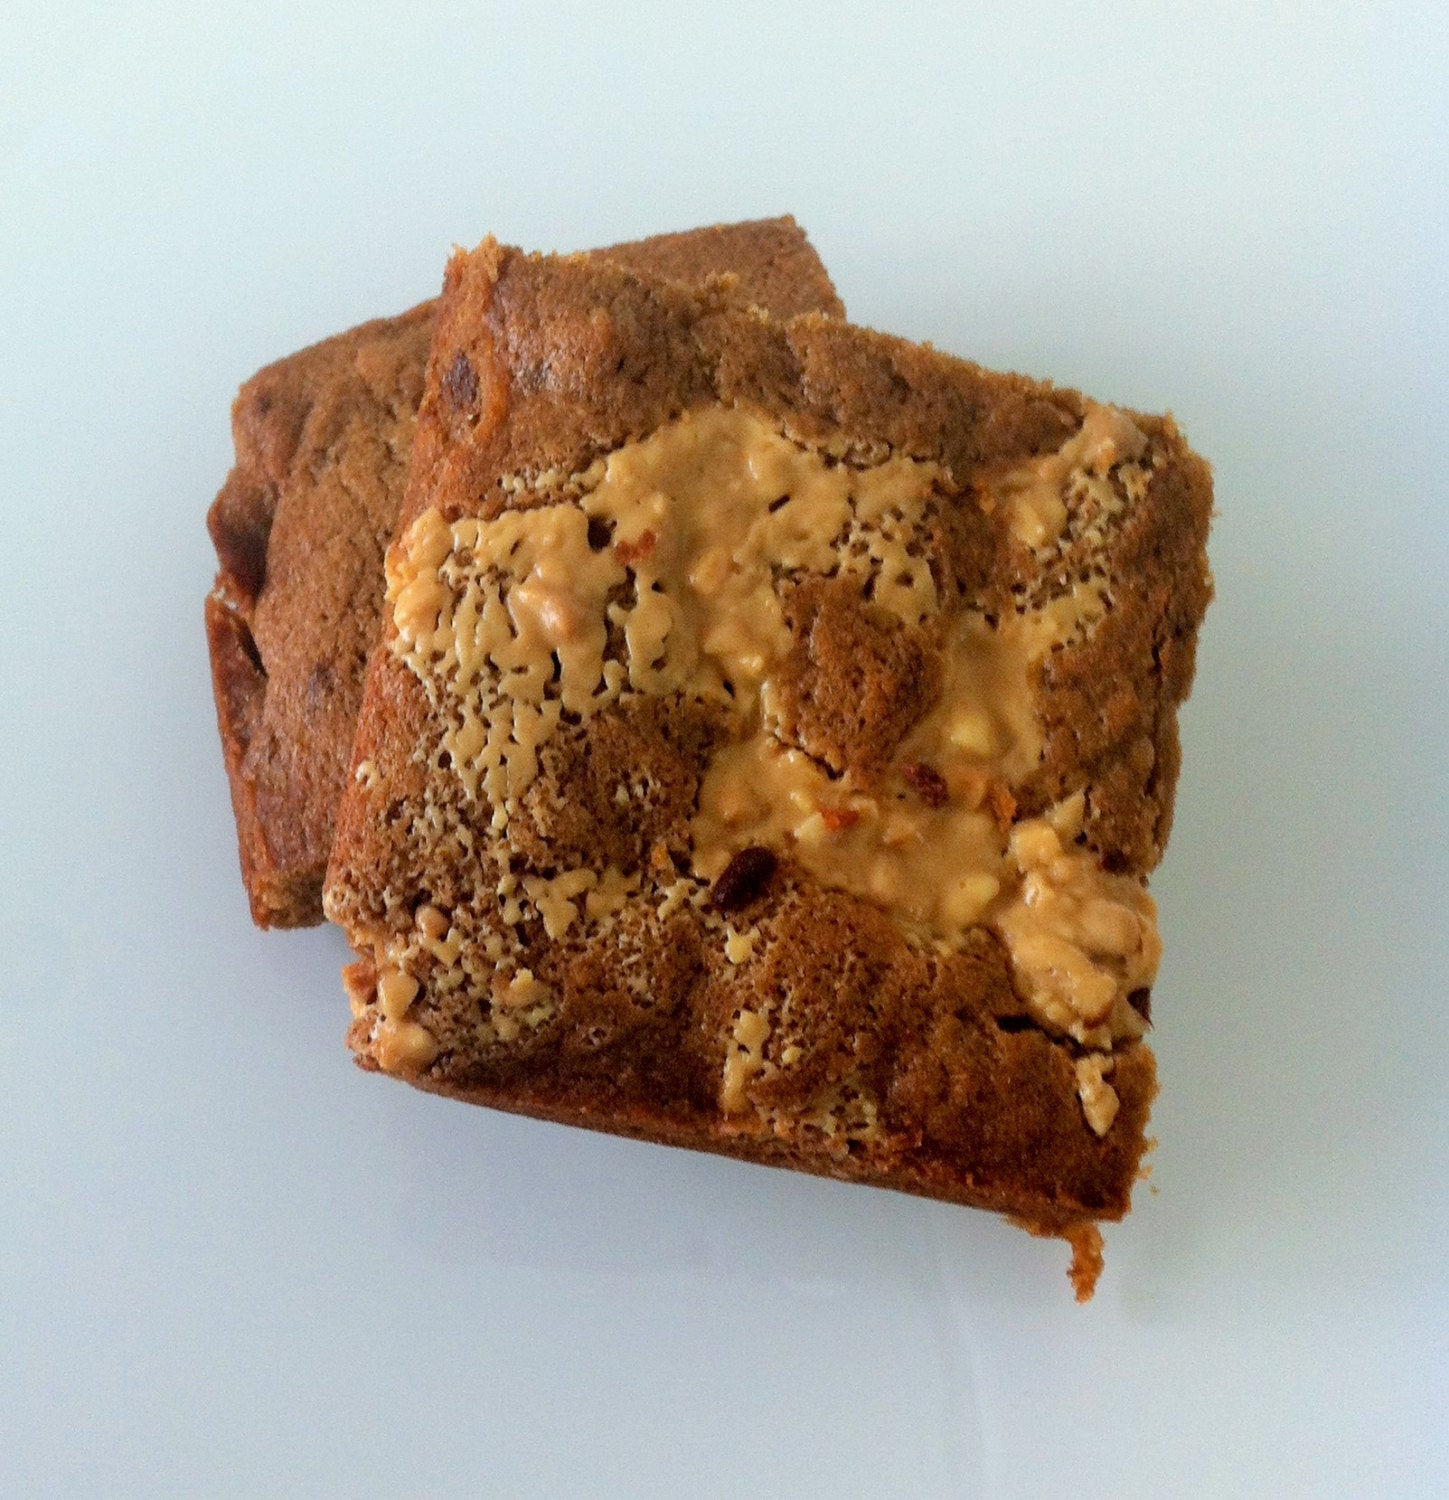 Peanut Butter Blondies (Box of 4 or 9) - Clare's Squares - order Blondies online with free delivery to your door